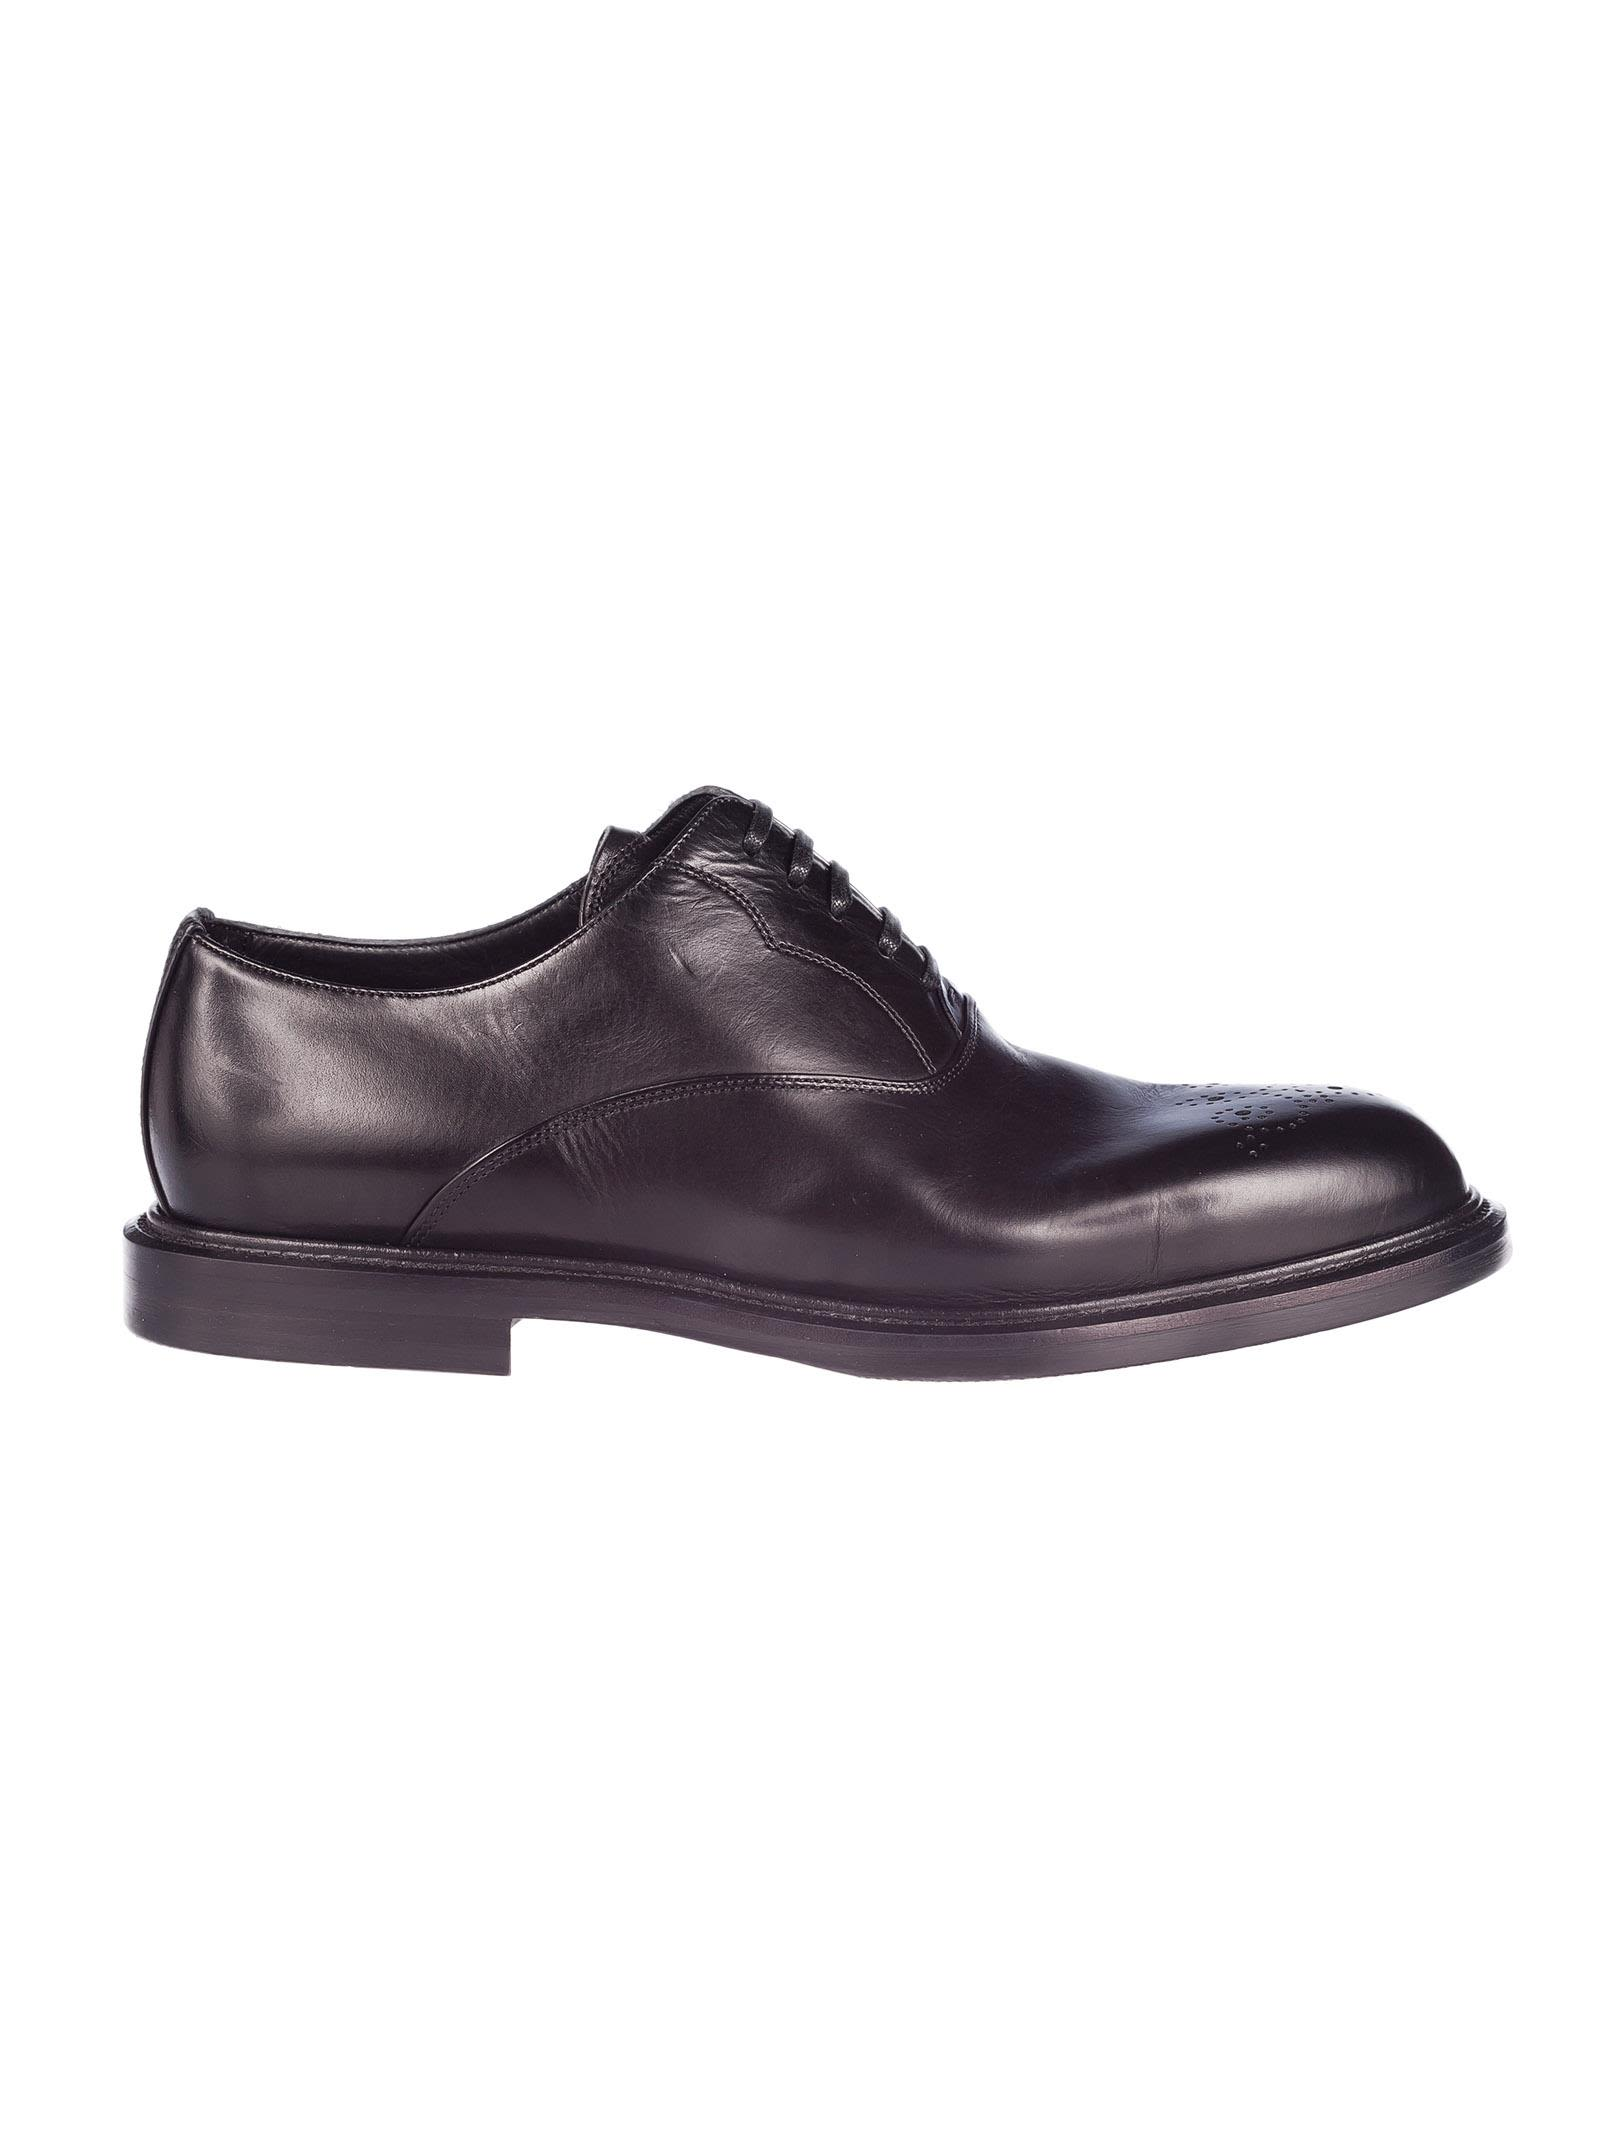 Dolce & Gabbana Leather Lace-up Brogues